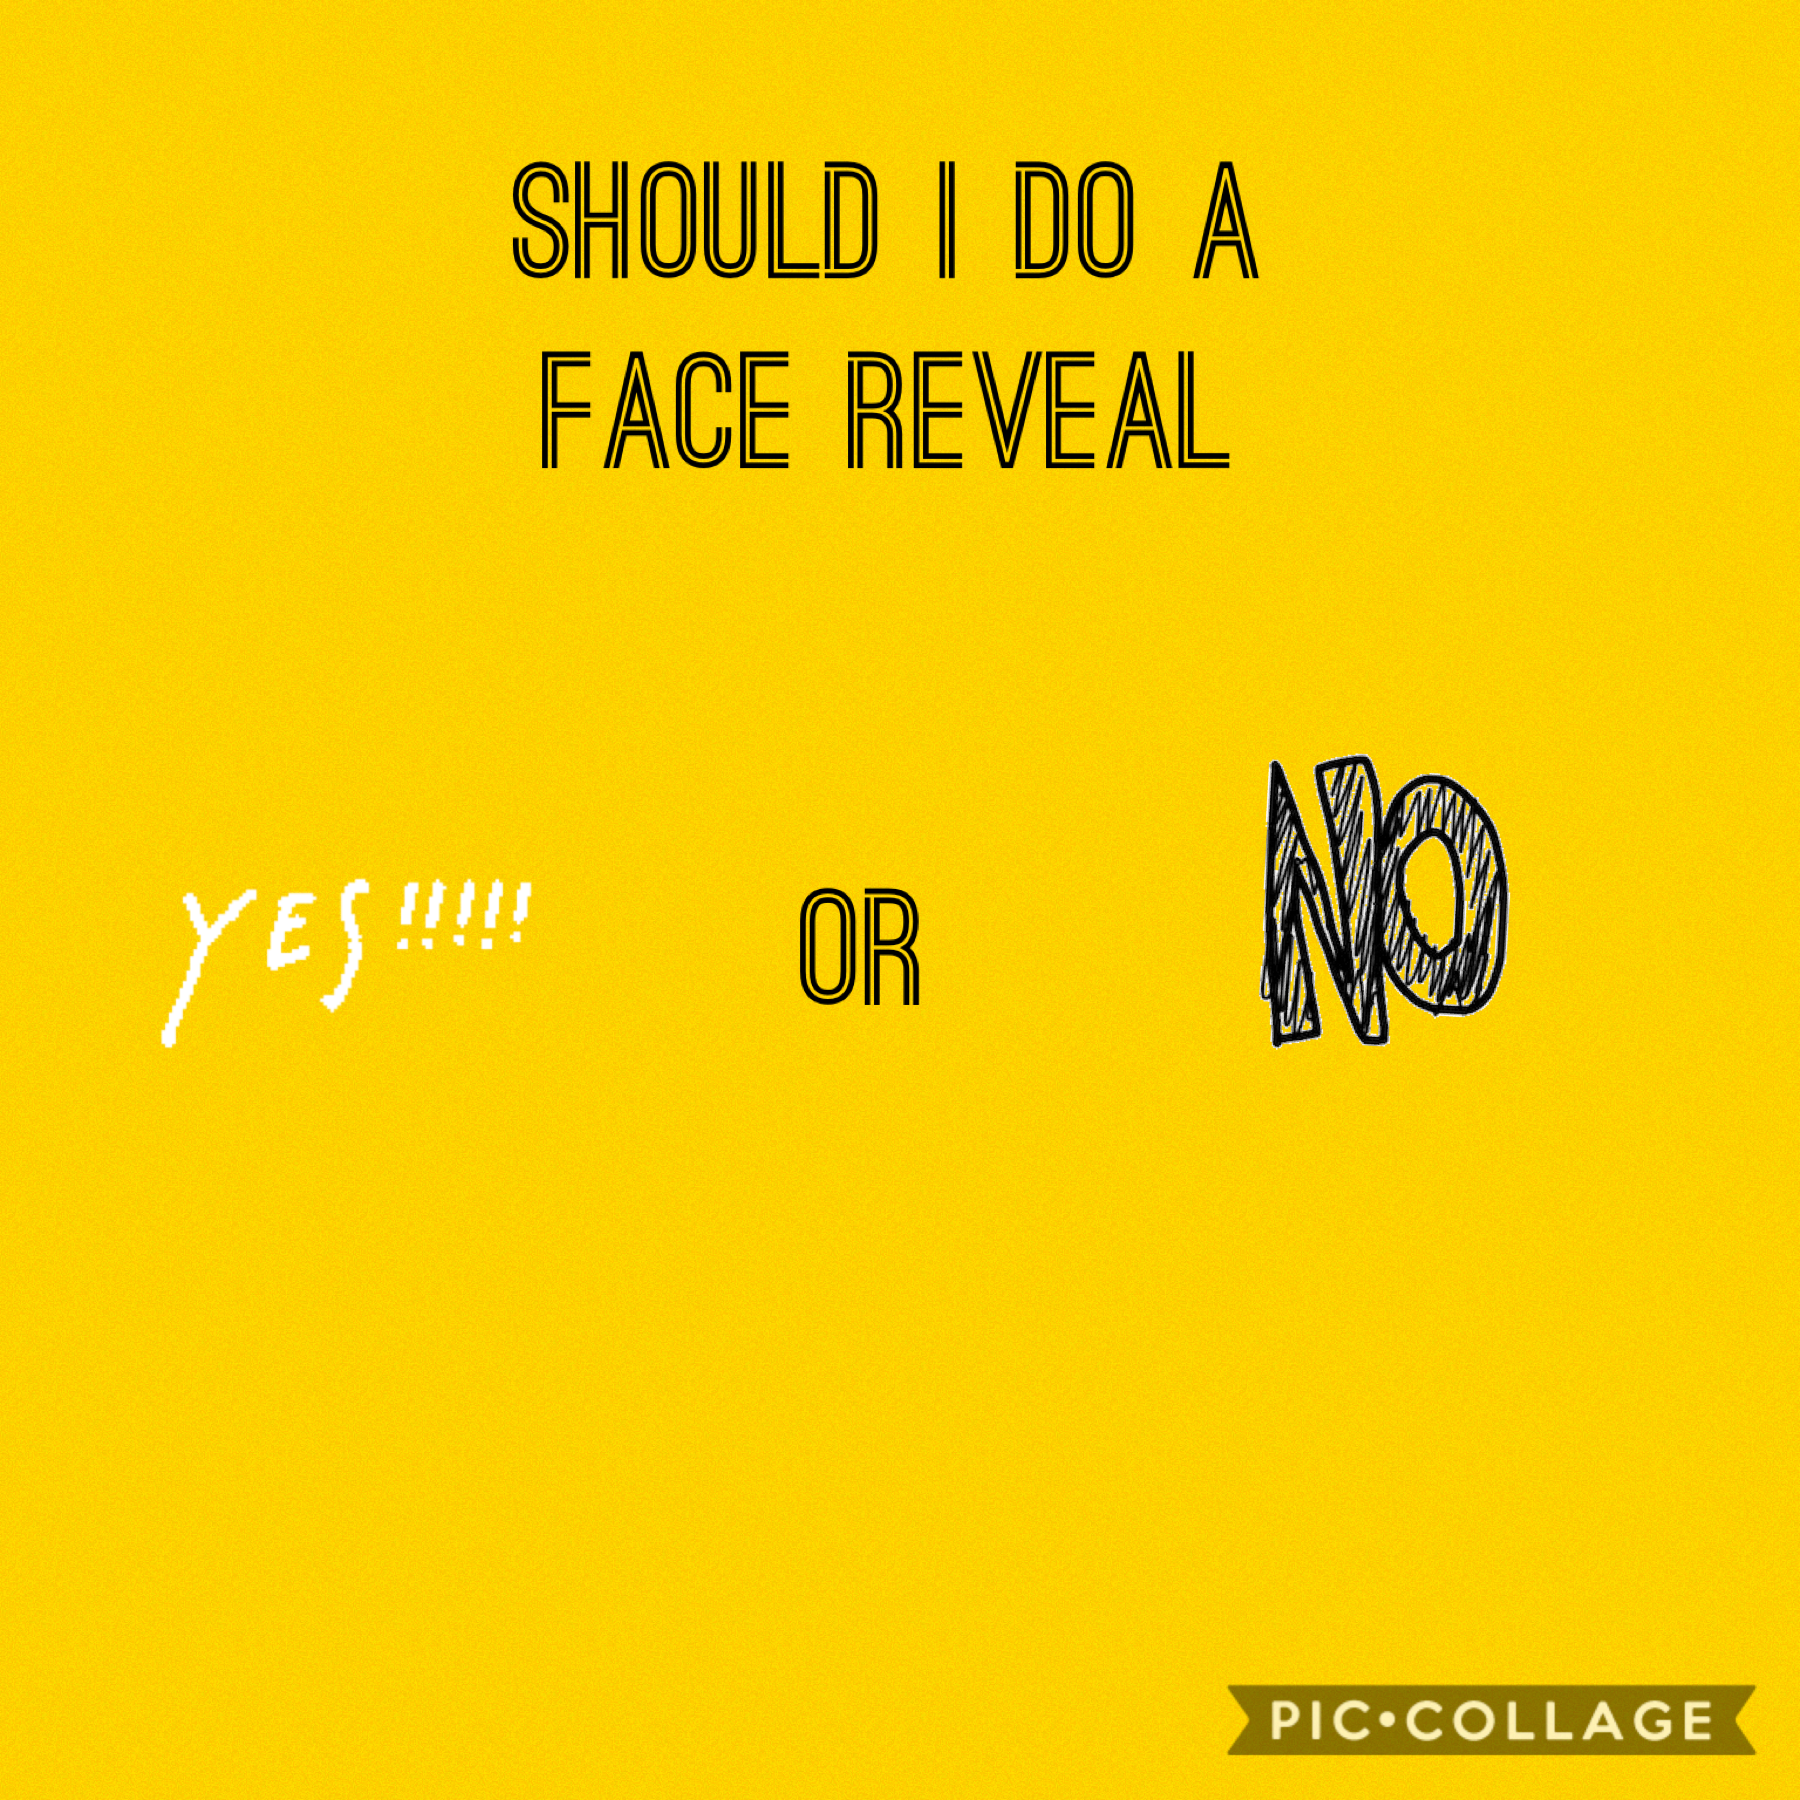 Face reveal or no